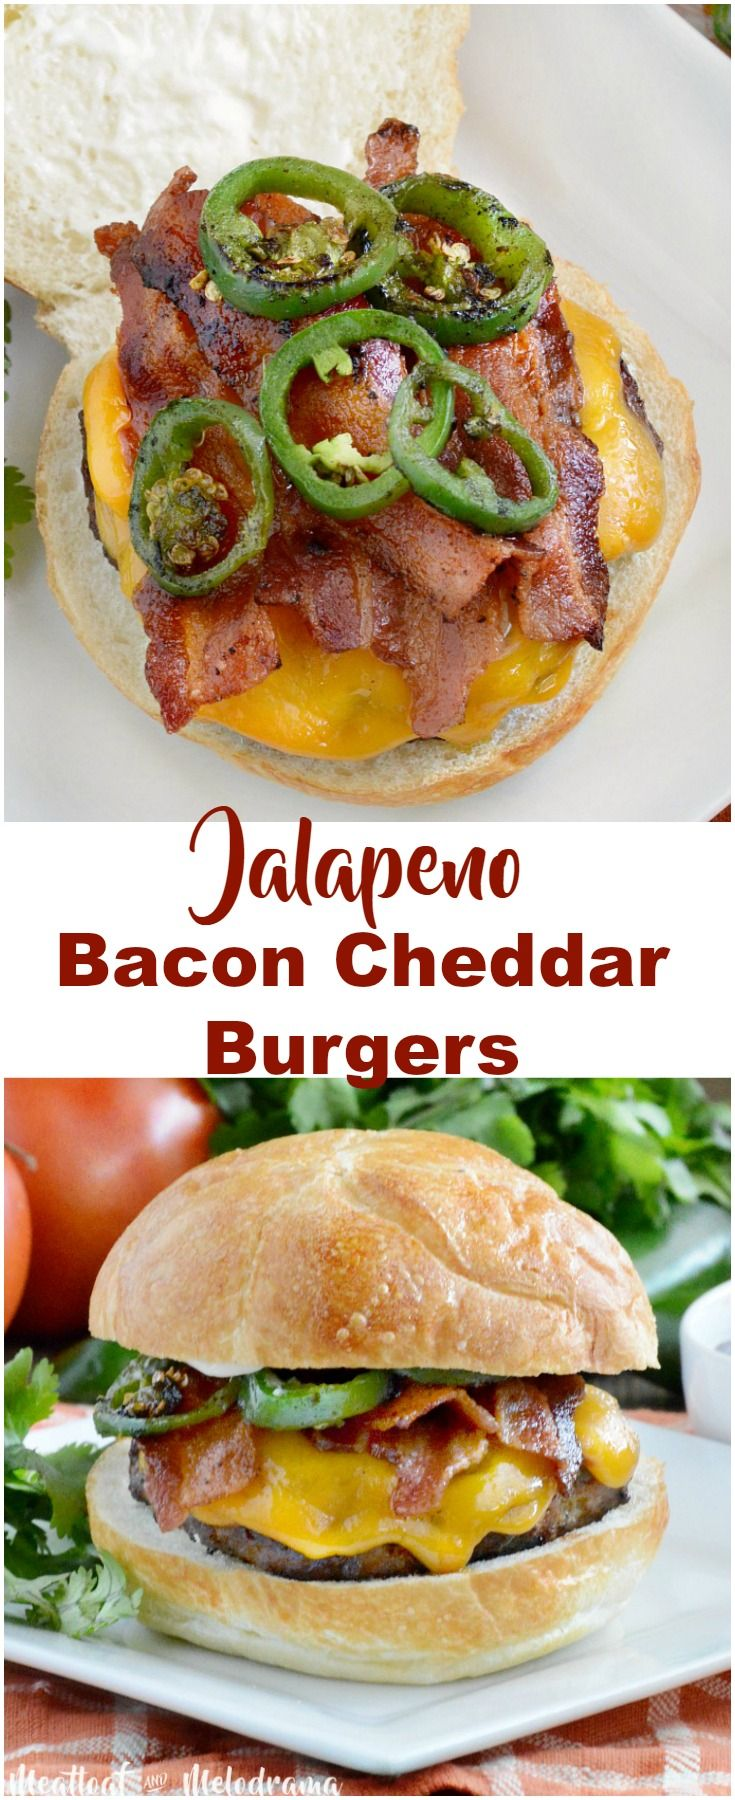 Jalapeno Bacon Cheddar Burgers - Thick and Juicy beef patties glazed with BBQ sauce and topped with cheddar cheese, crispy bacon and spicy jalapeno peppers are sure to be a hit at your next summer cookout! Perfect for Memorial Day or 4th of July barbecues! from Meatloaf and Melodrama